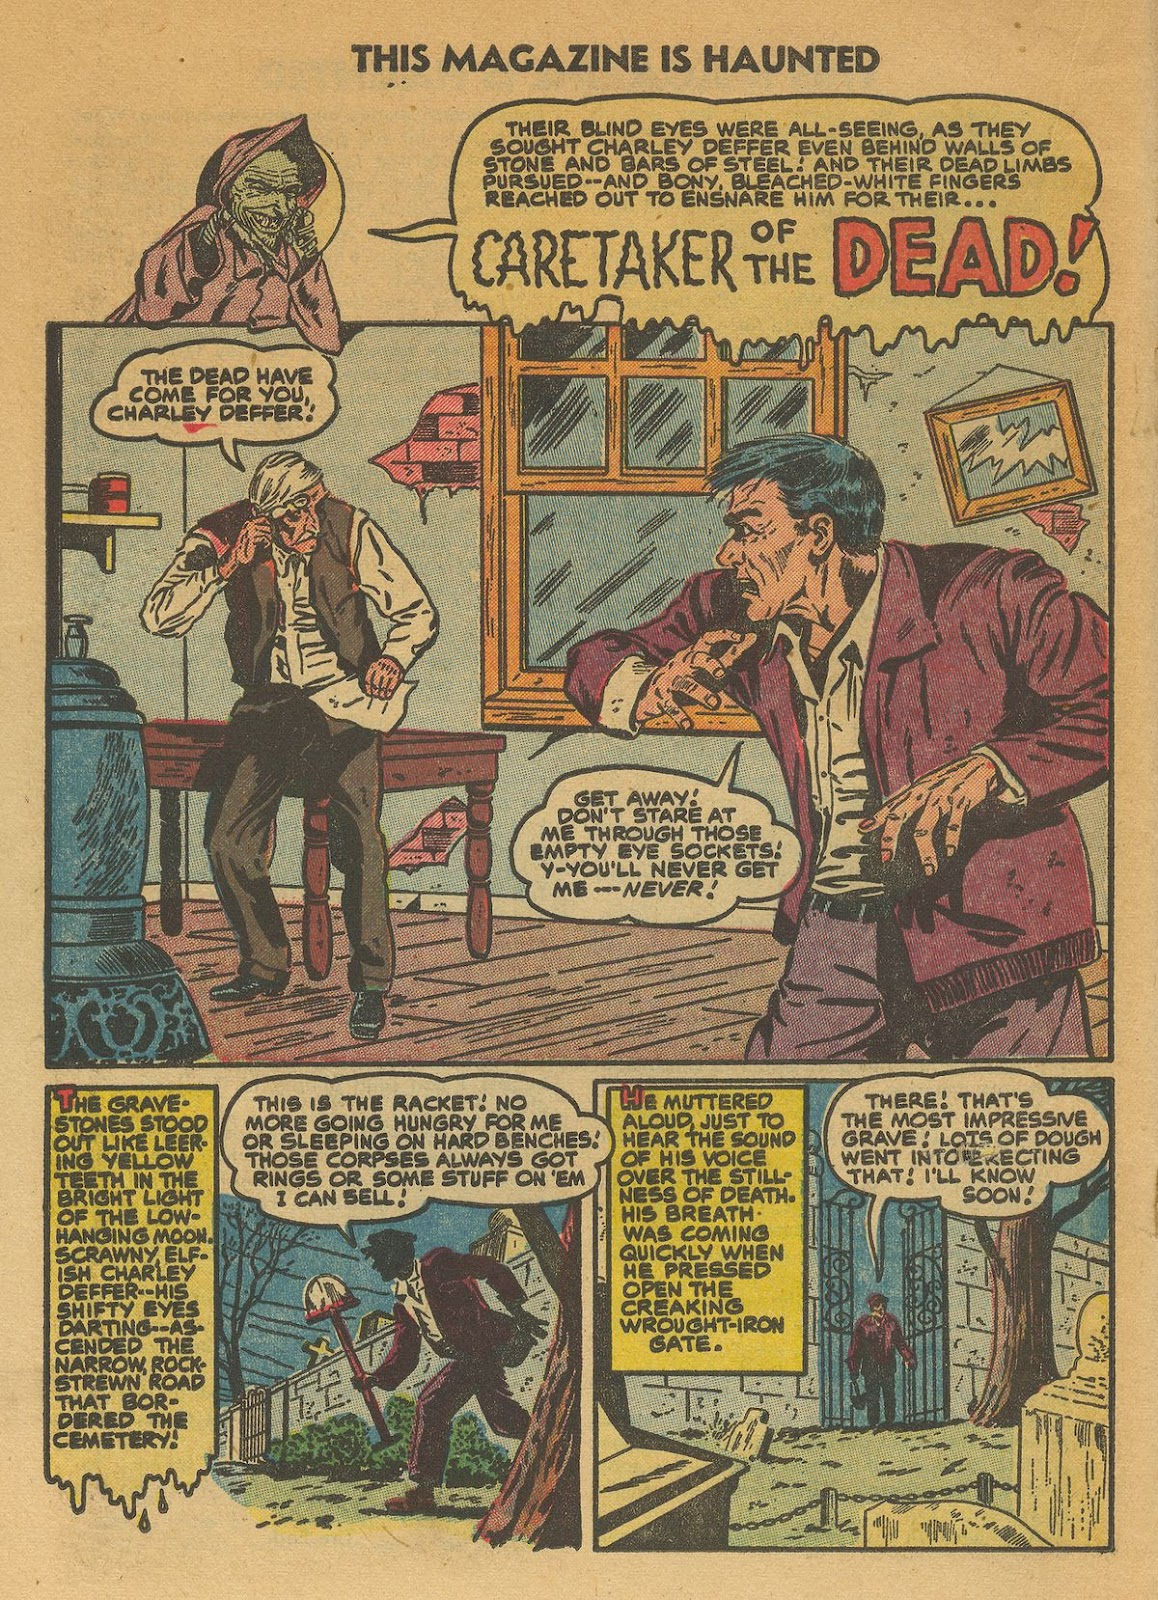 Read online This Magazine Is Haunted comic -  Issue #18 - 18